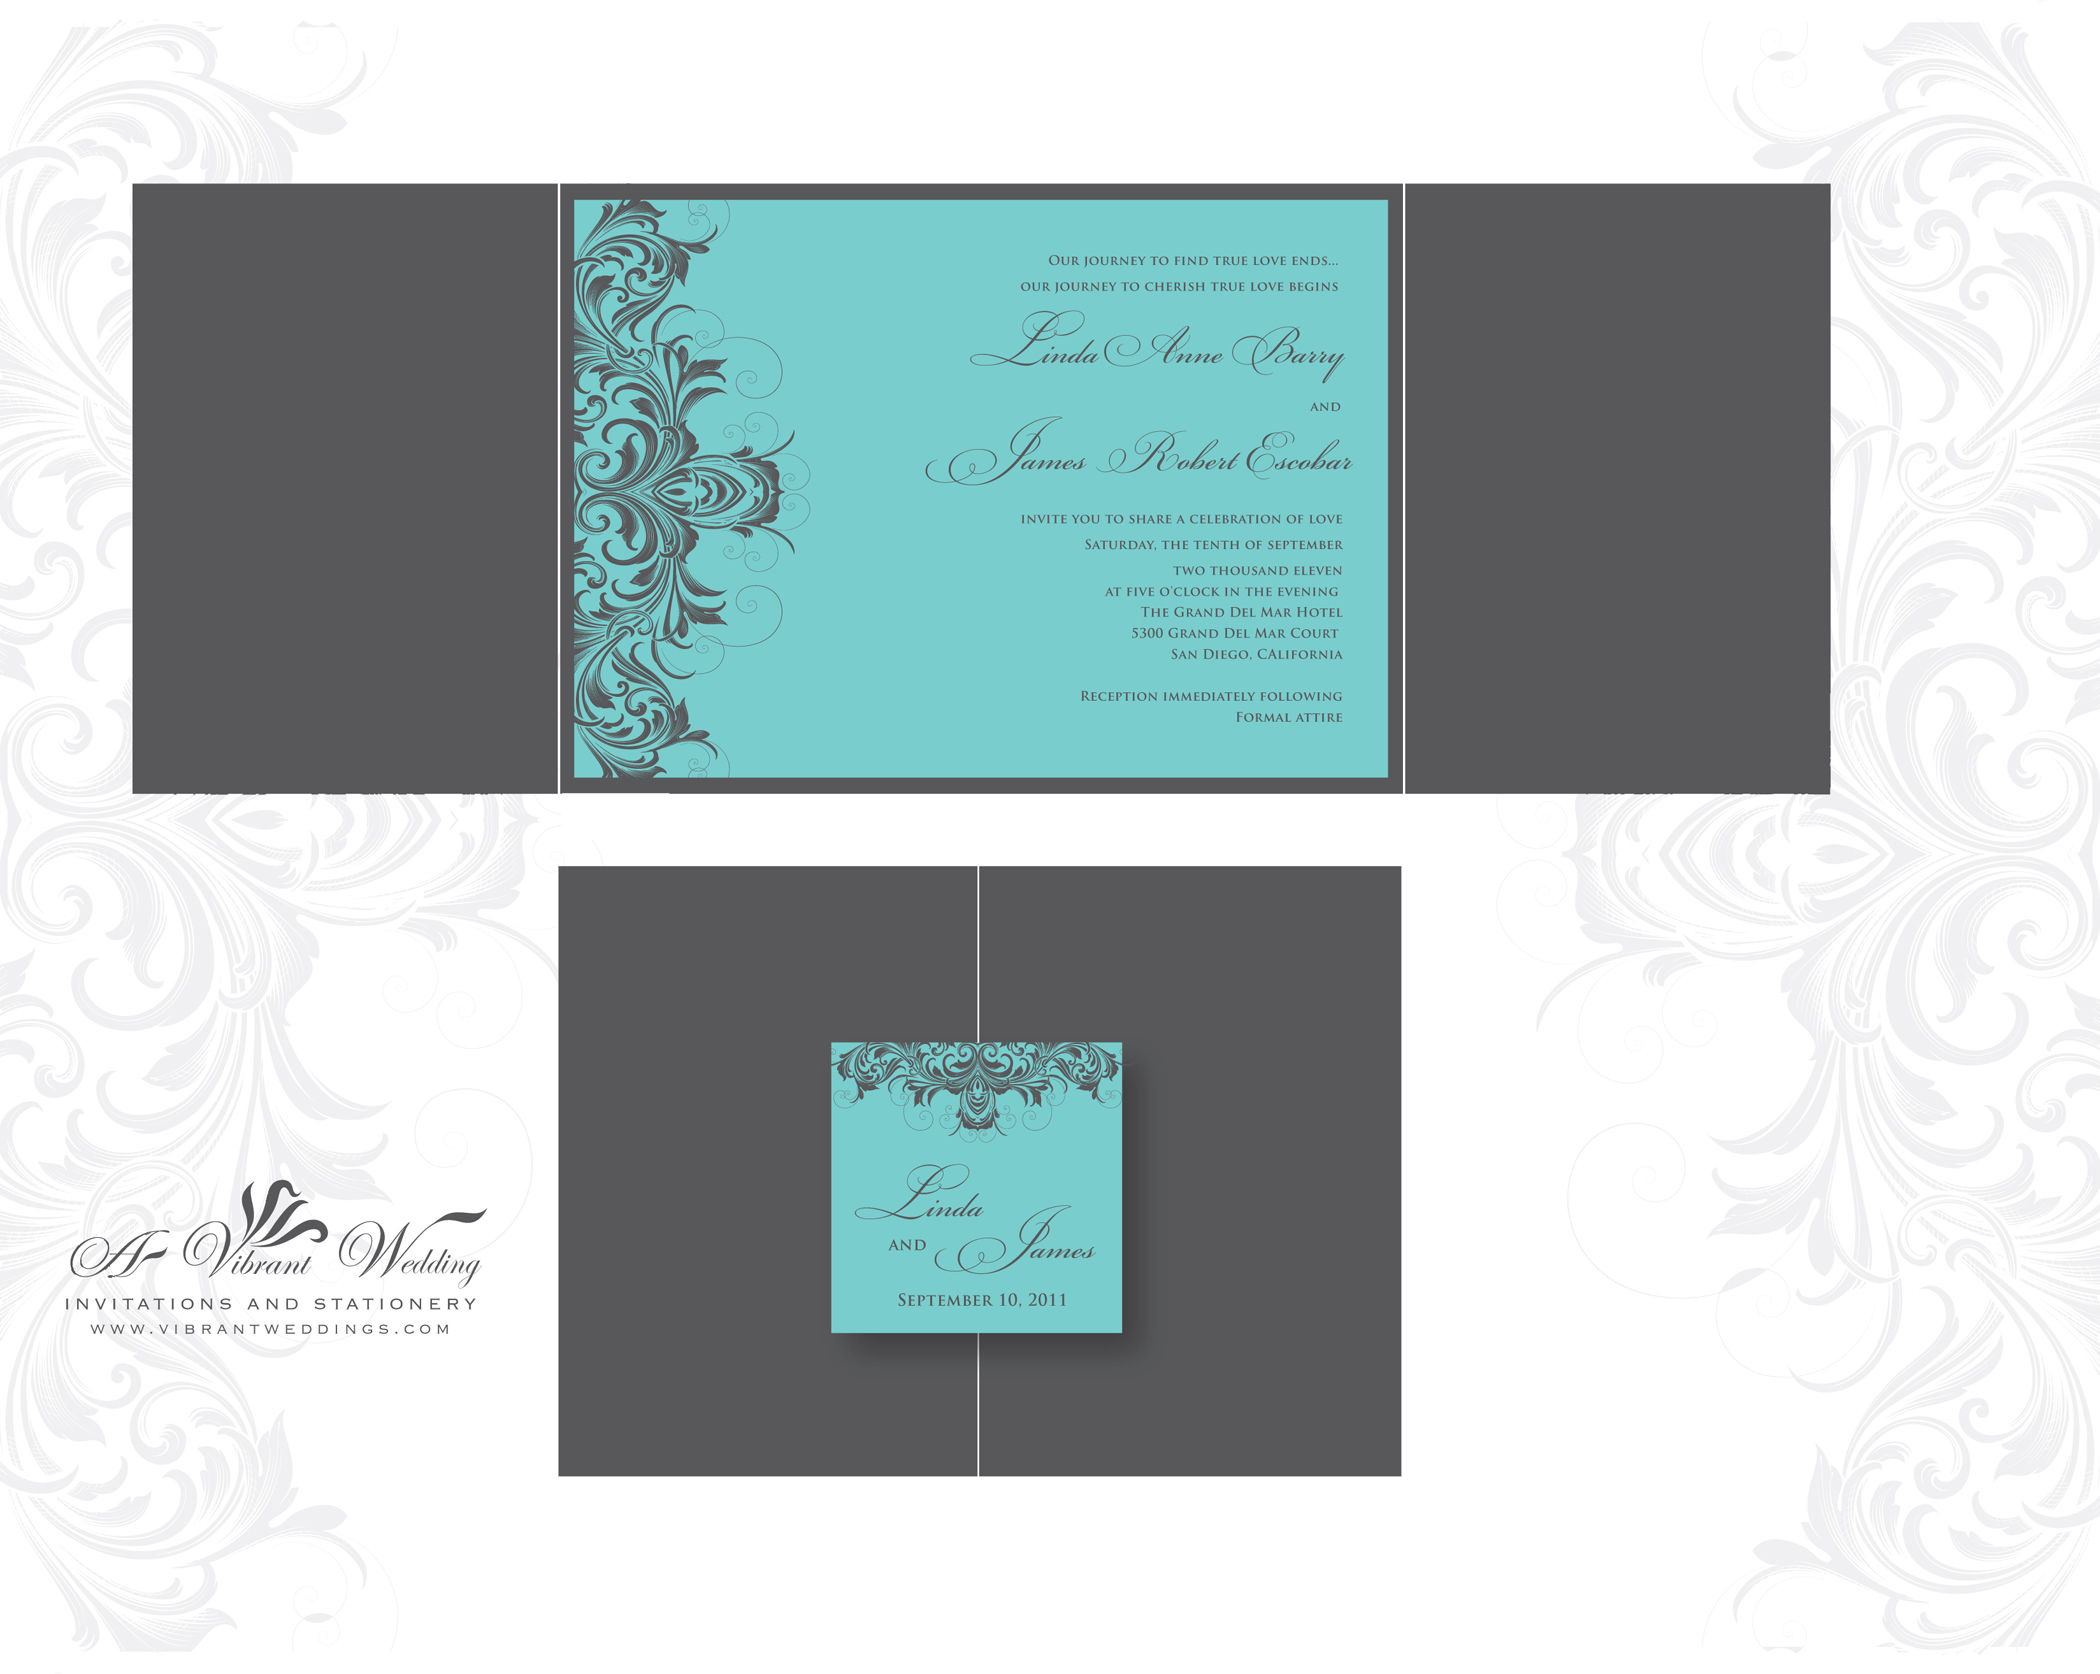 tiffany blue and grey wedding invitation tiffany blue wedding invitations Turquoise and Grey Wedding Invitation Gatefold